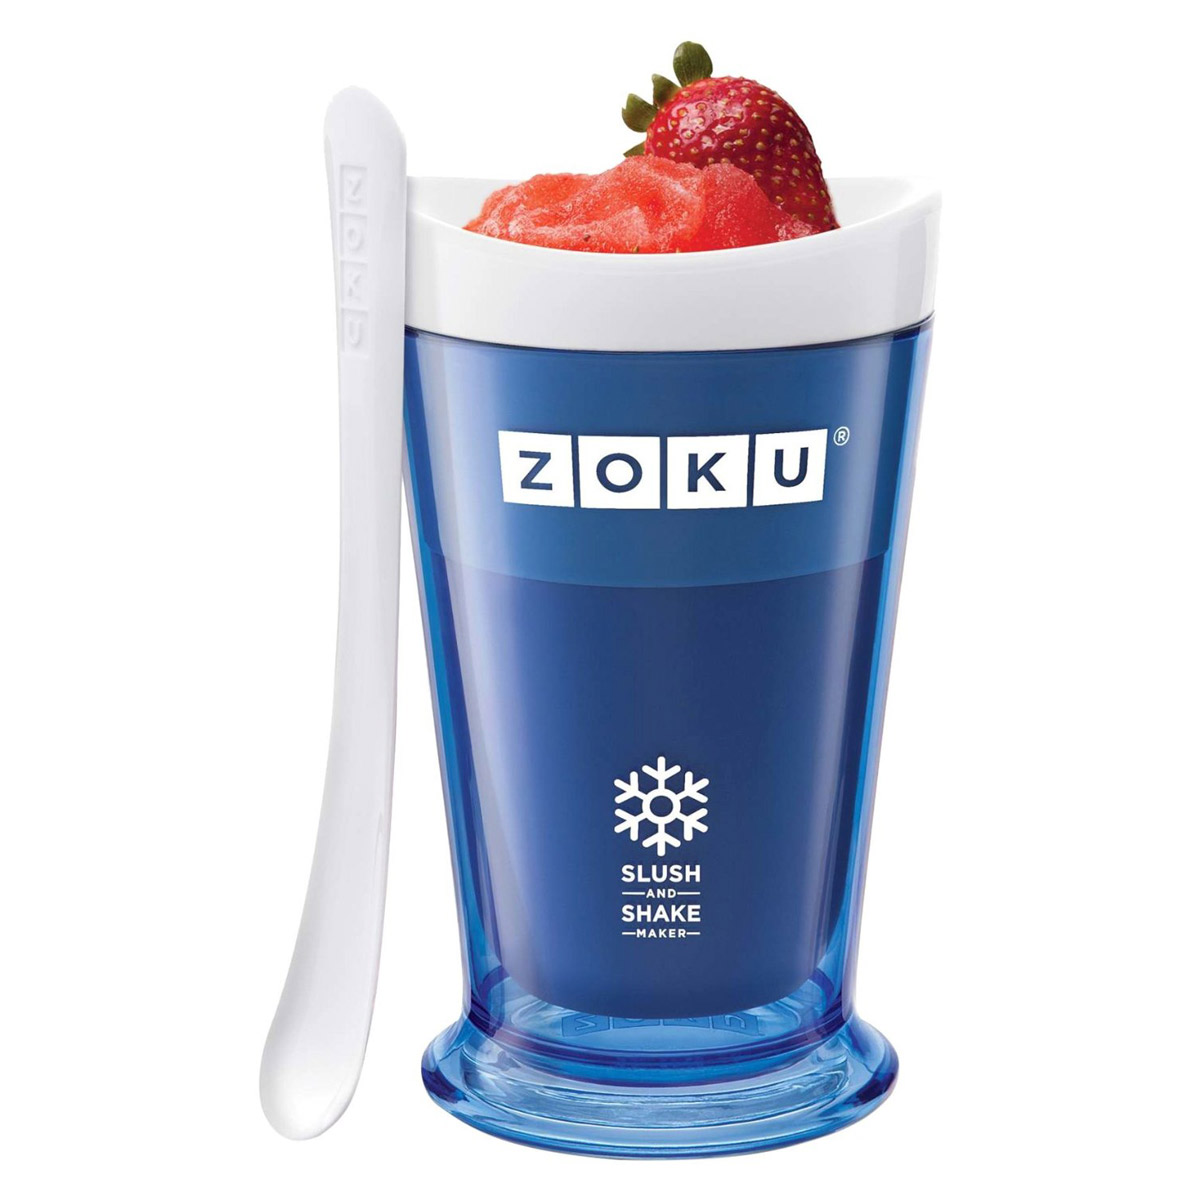 Zoku Slush And Shake Maker The Green Head